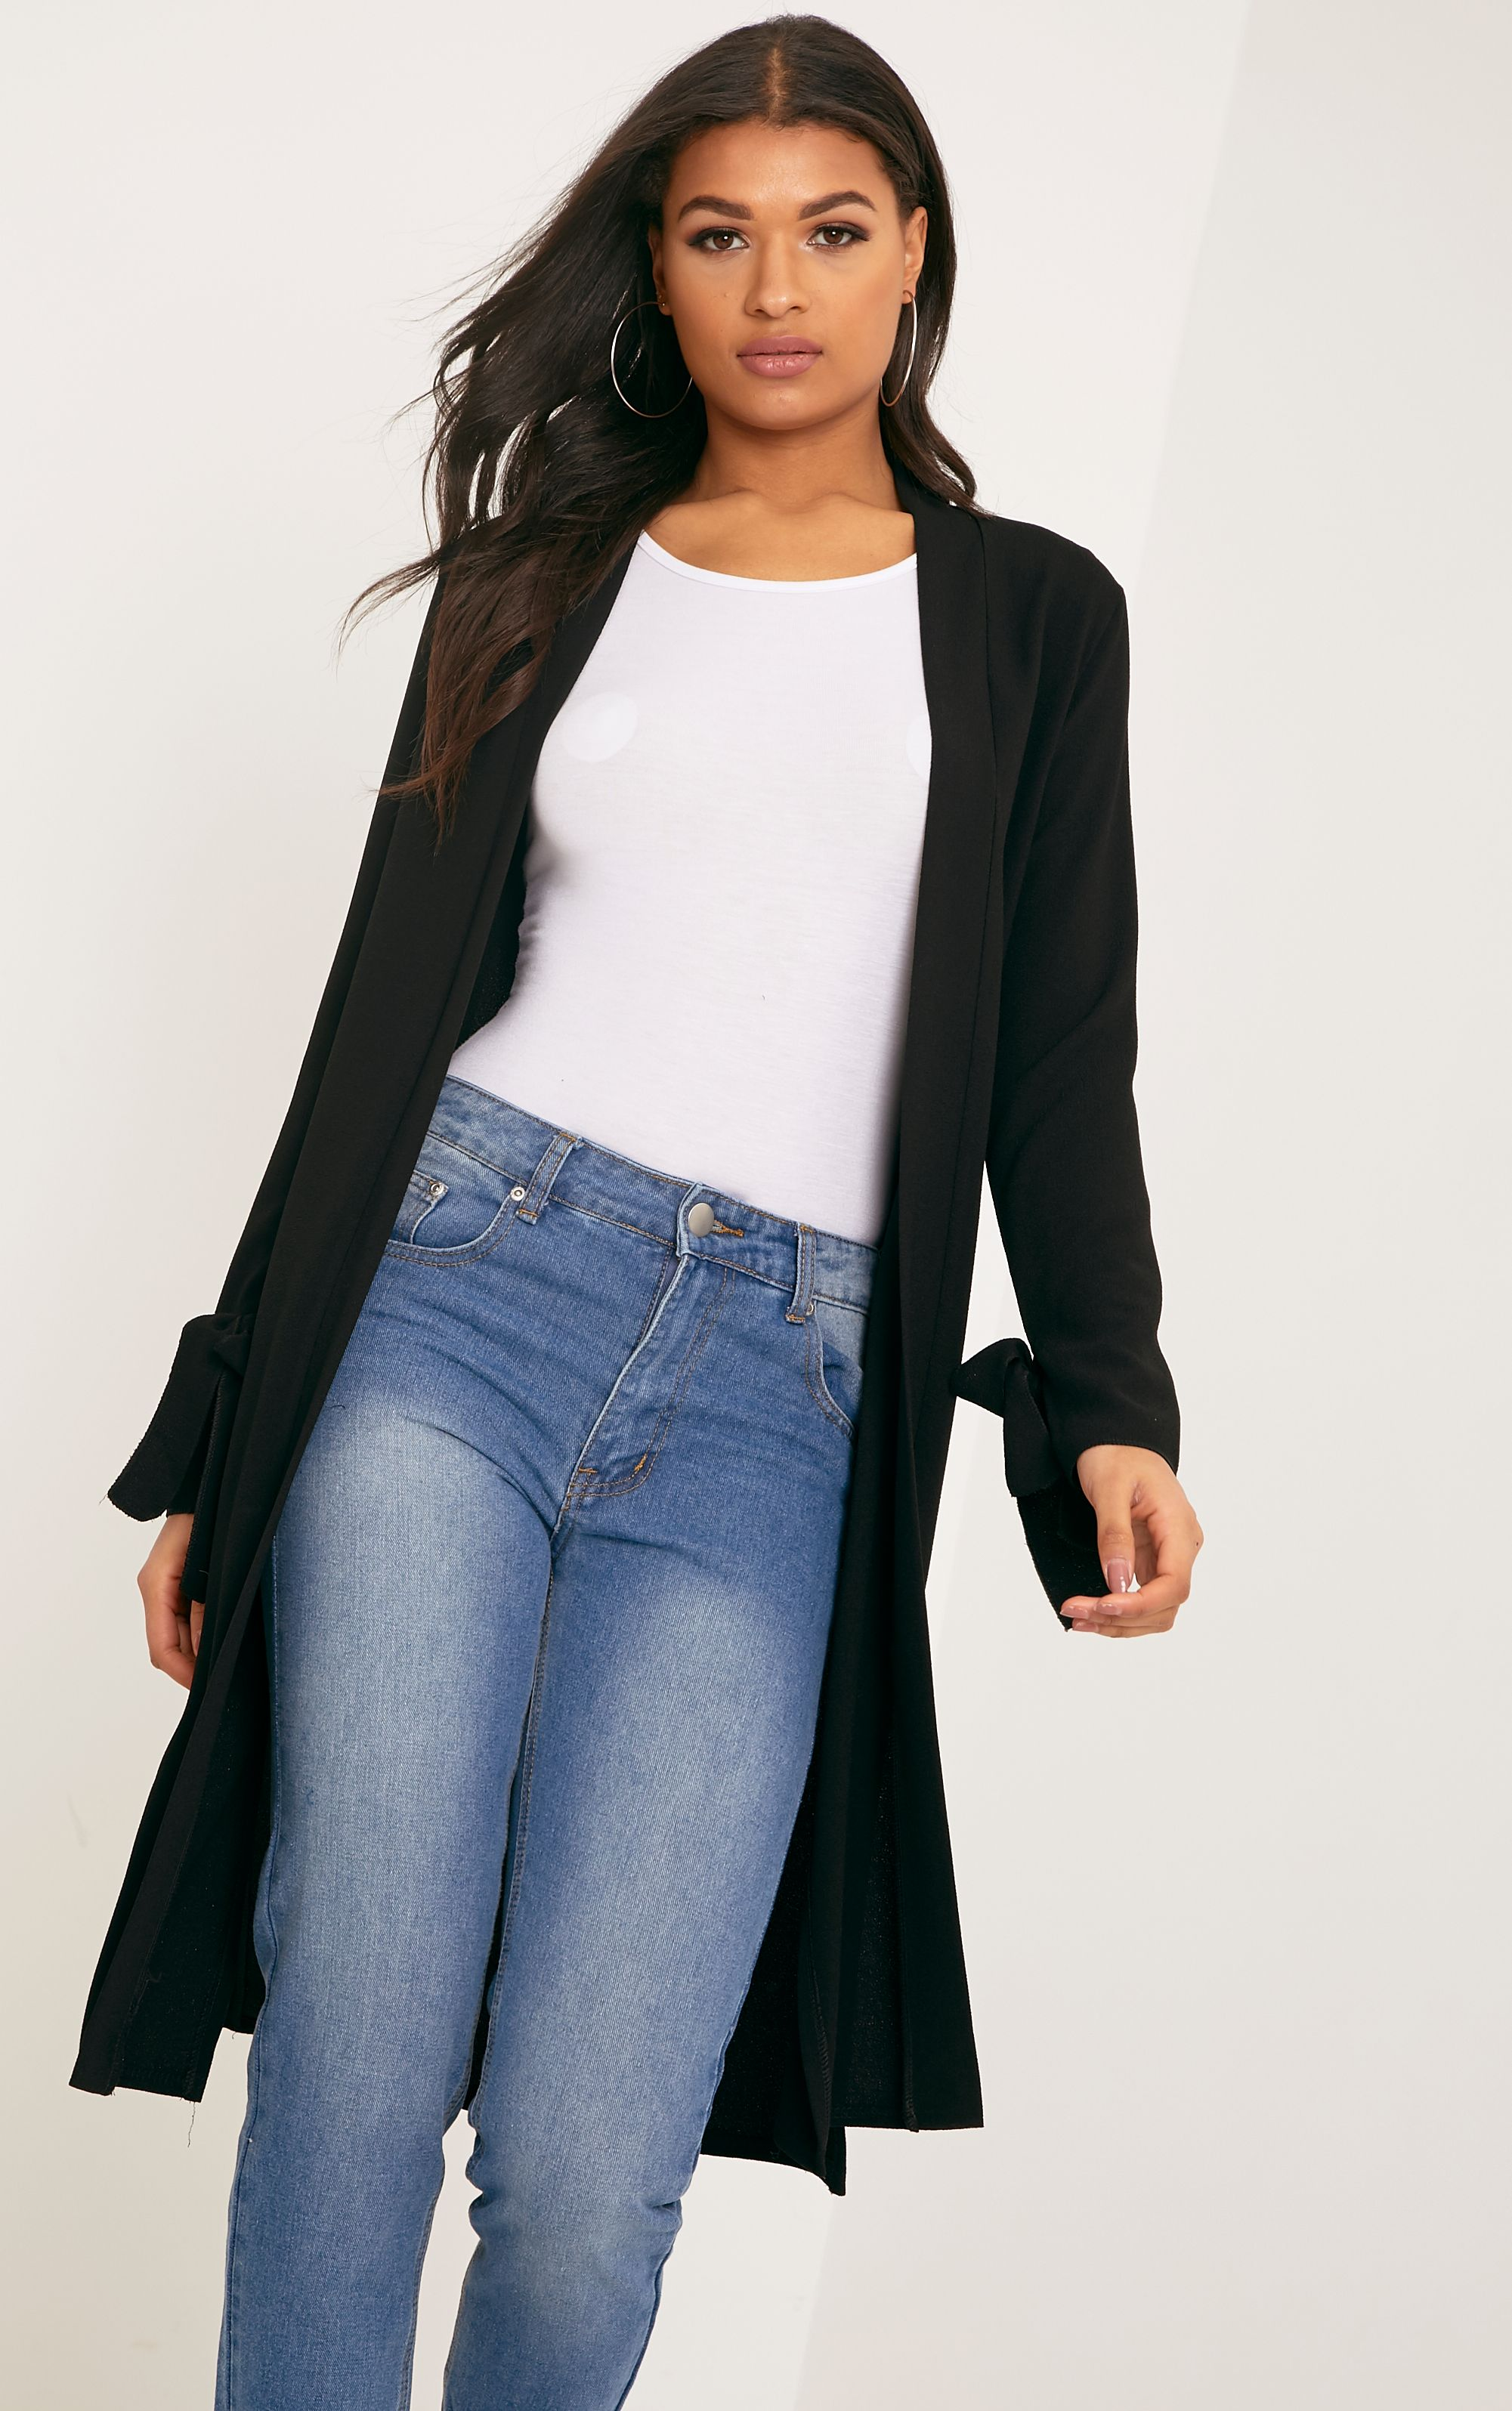 Aba Black Sleeve Tie Detail Duster Coat